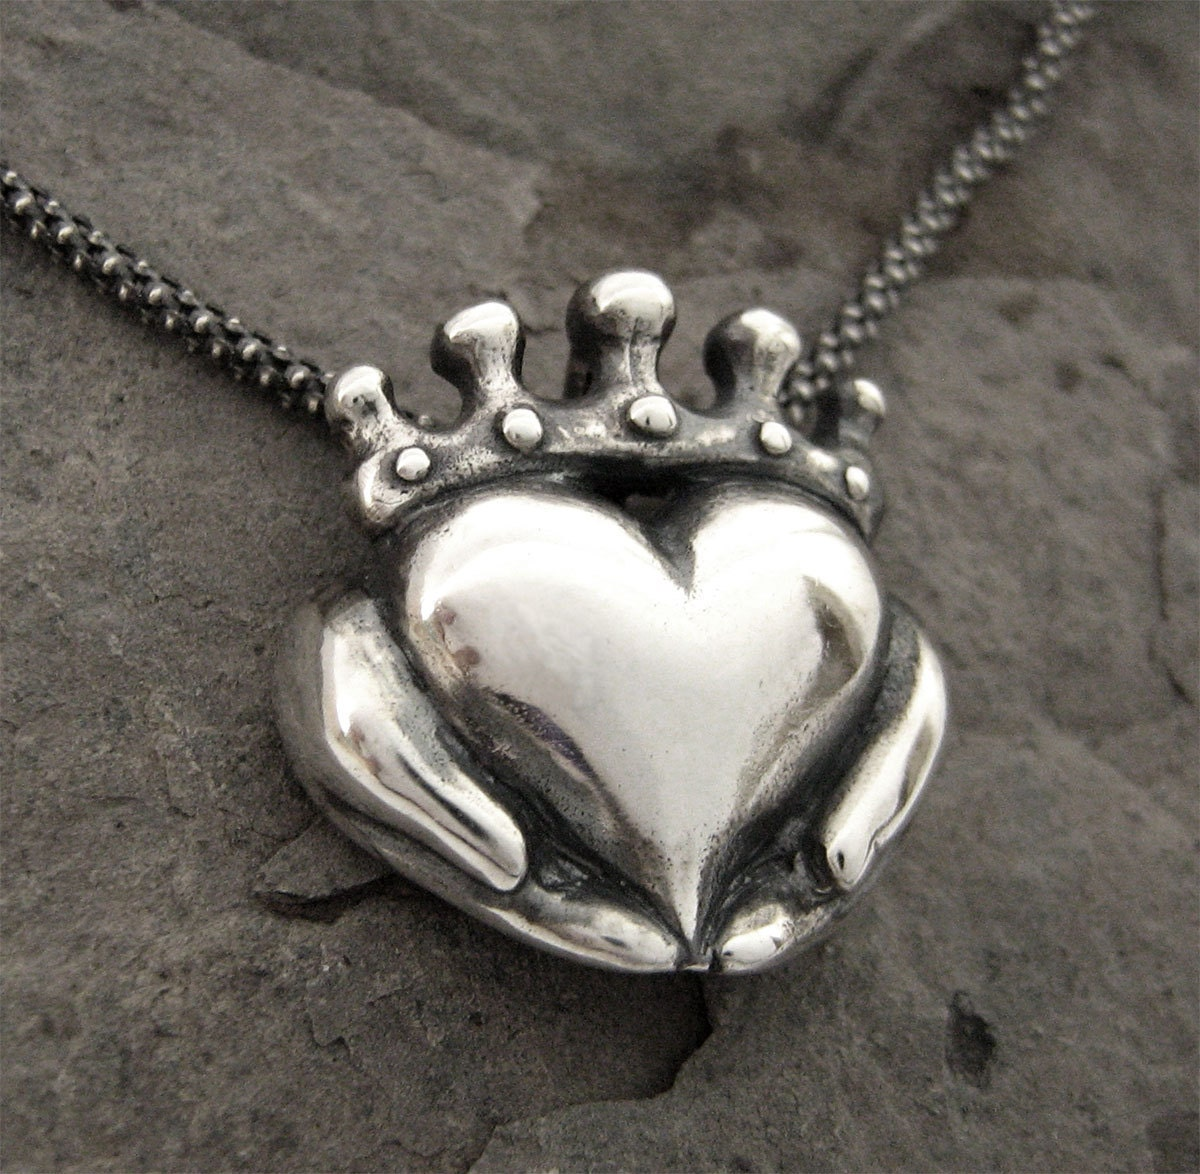 heart ltd necklaces down necklace upside pendant rings celtic claddagh